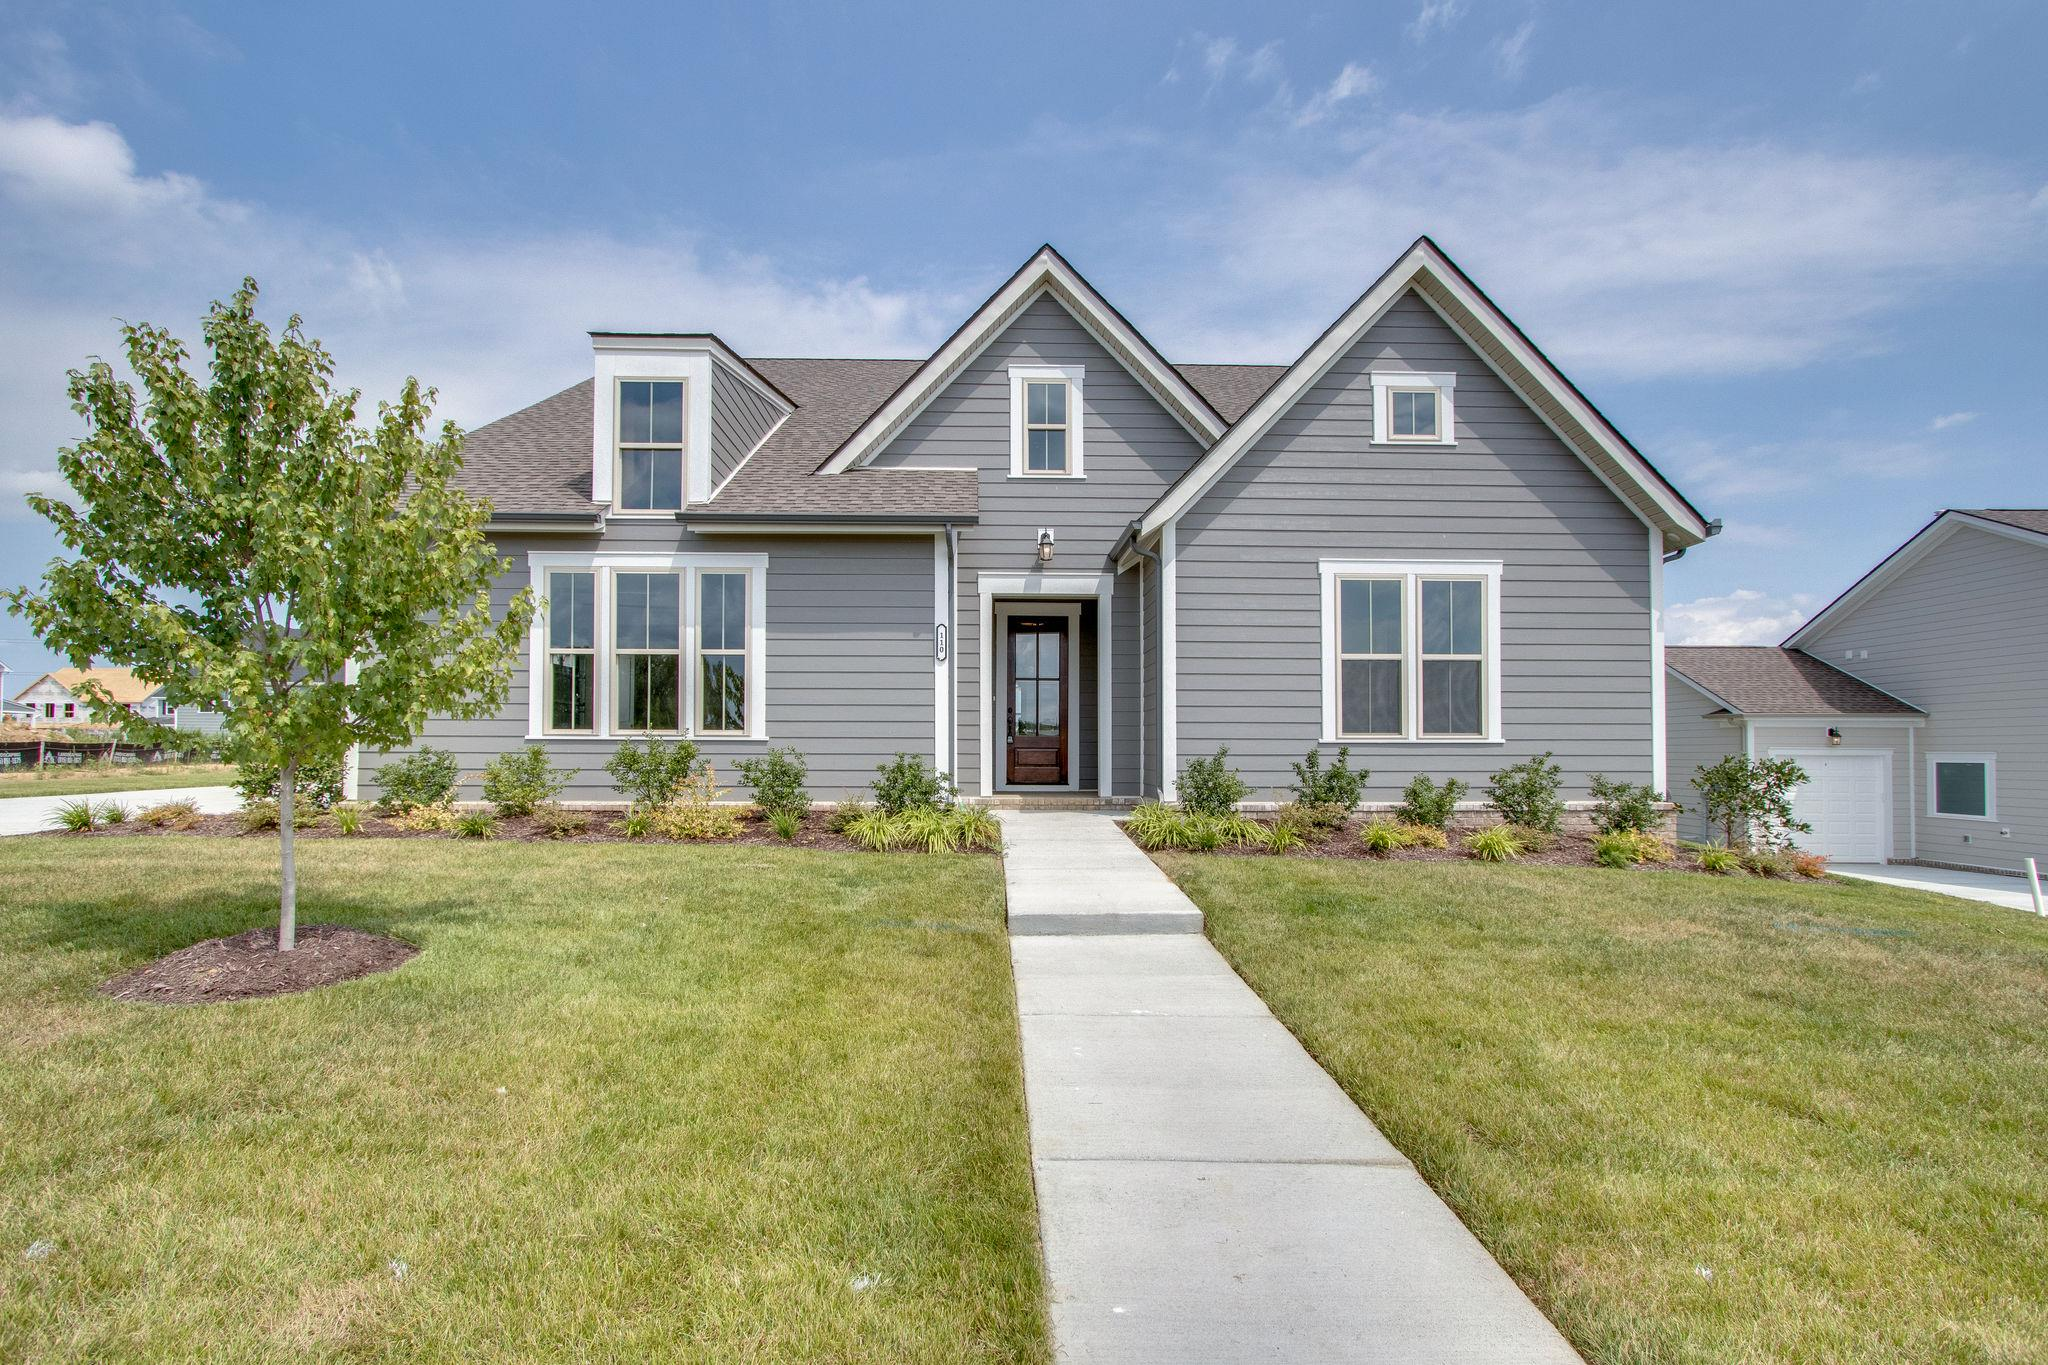 110 Kilkenny Way (136) 37122 - One of Mount Juliet Homes for Sale